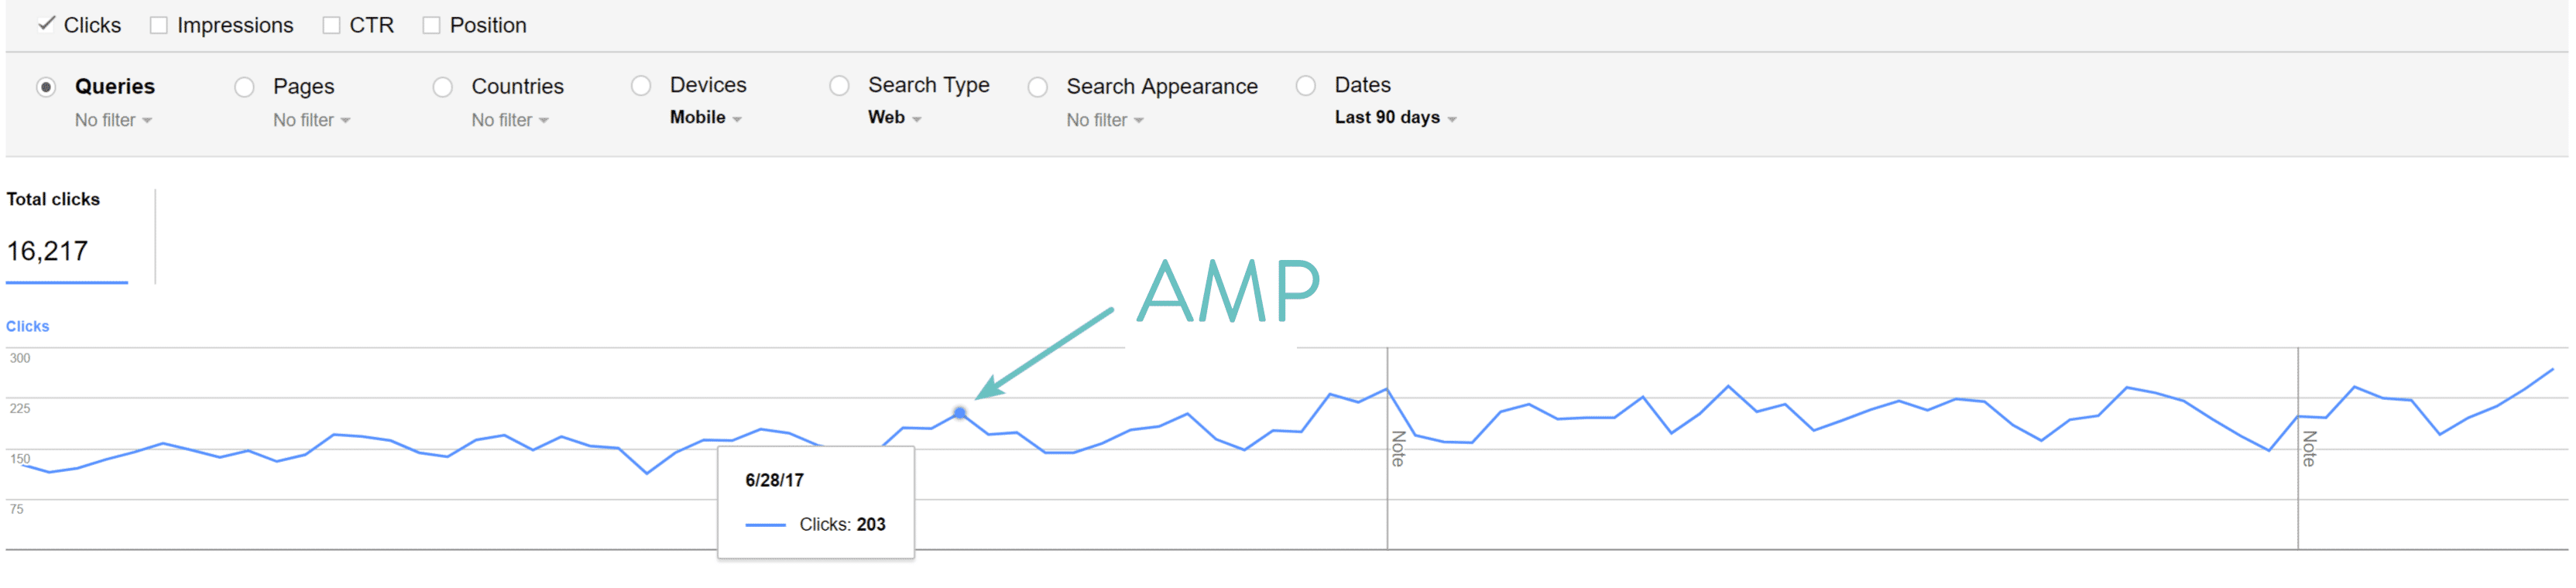 Google AMP-clicks